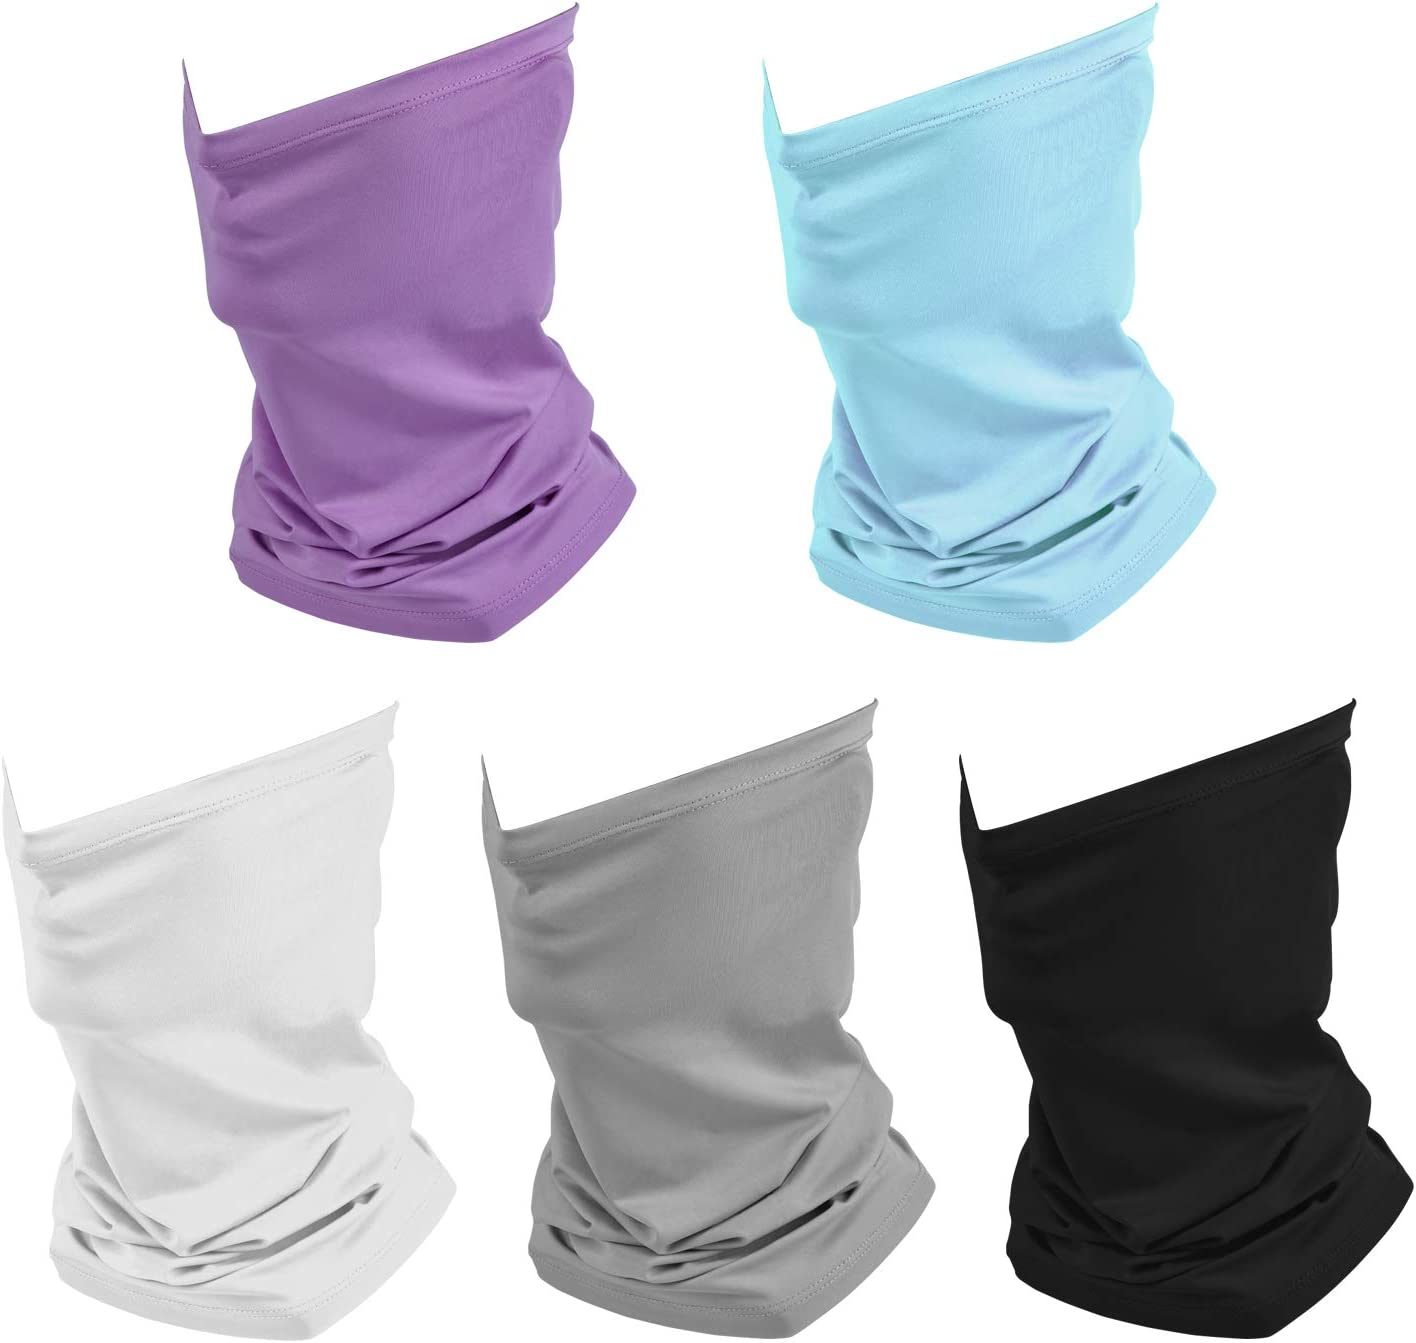 Retail Sign Systems 5 Pack Summer Neck Bandana Face Mask UV Sun Protection, Unisex Elastic Neck Gaiter Face Mask Breathable Cooling Fishing Face Scarf Cover